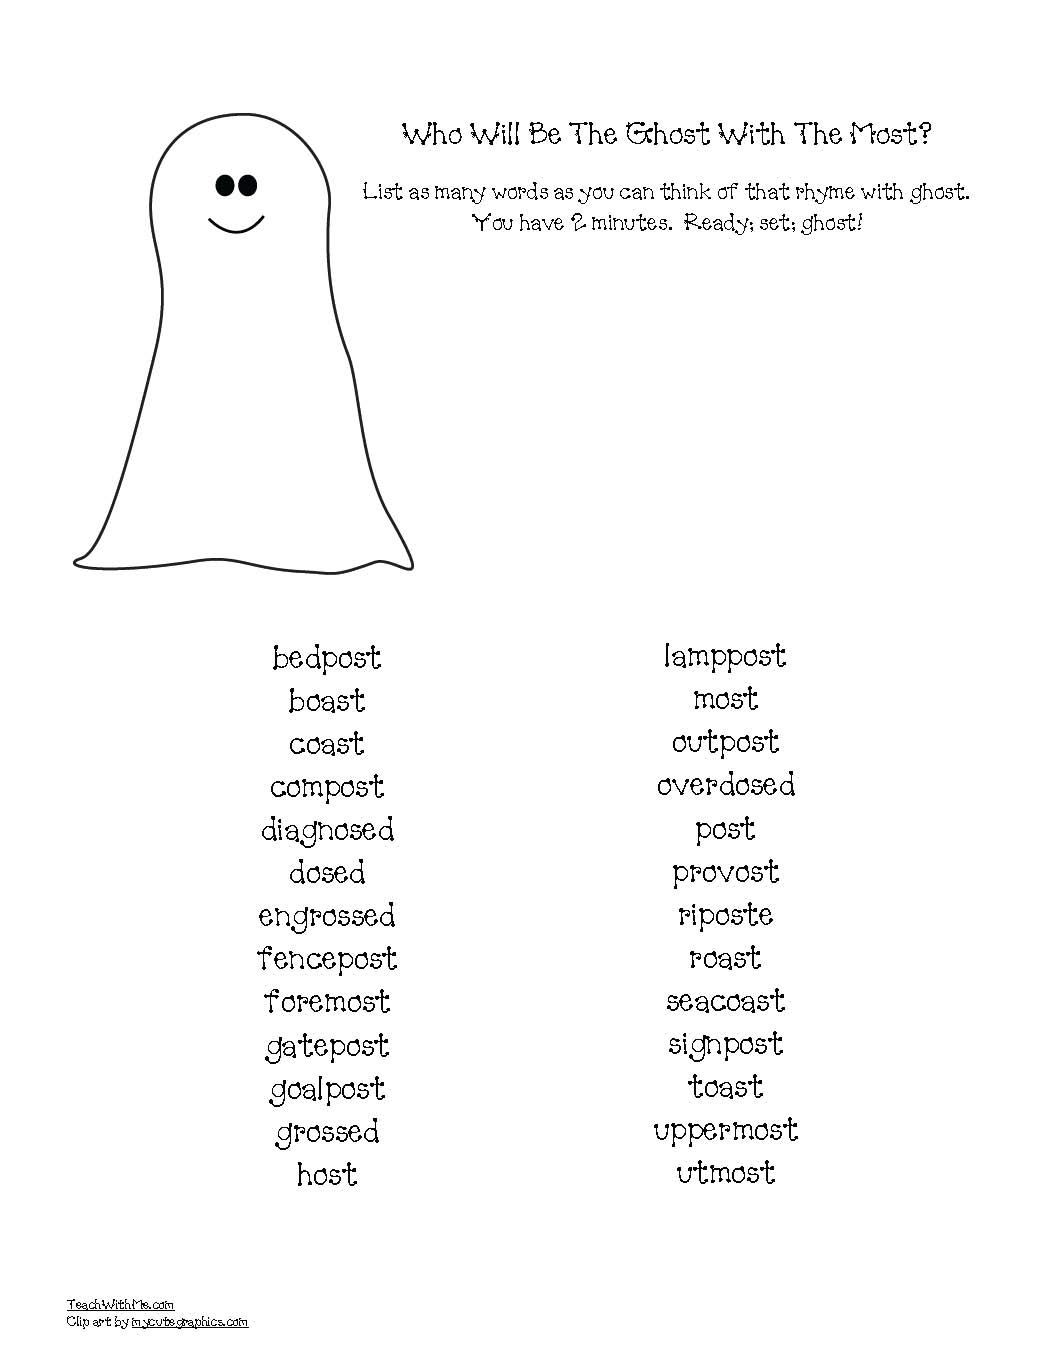 ghost with the most rhyme worksheet, halloween activities, ghost crafts, ghost activities, words that rhyme with ghost, halloween crafts, halloween math activities, math games, ghost games, halloween games, number word activities, numbskull activities, candy bones math, candy bones graph, 5 little ghosts poem, candy bones activities, free number cards